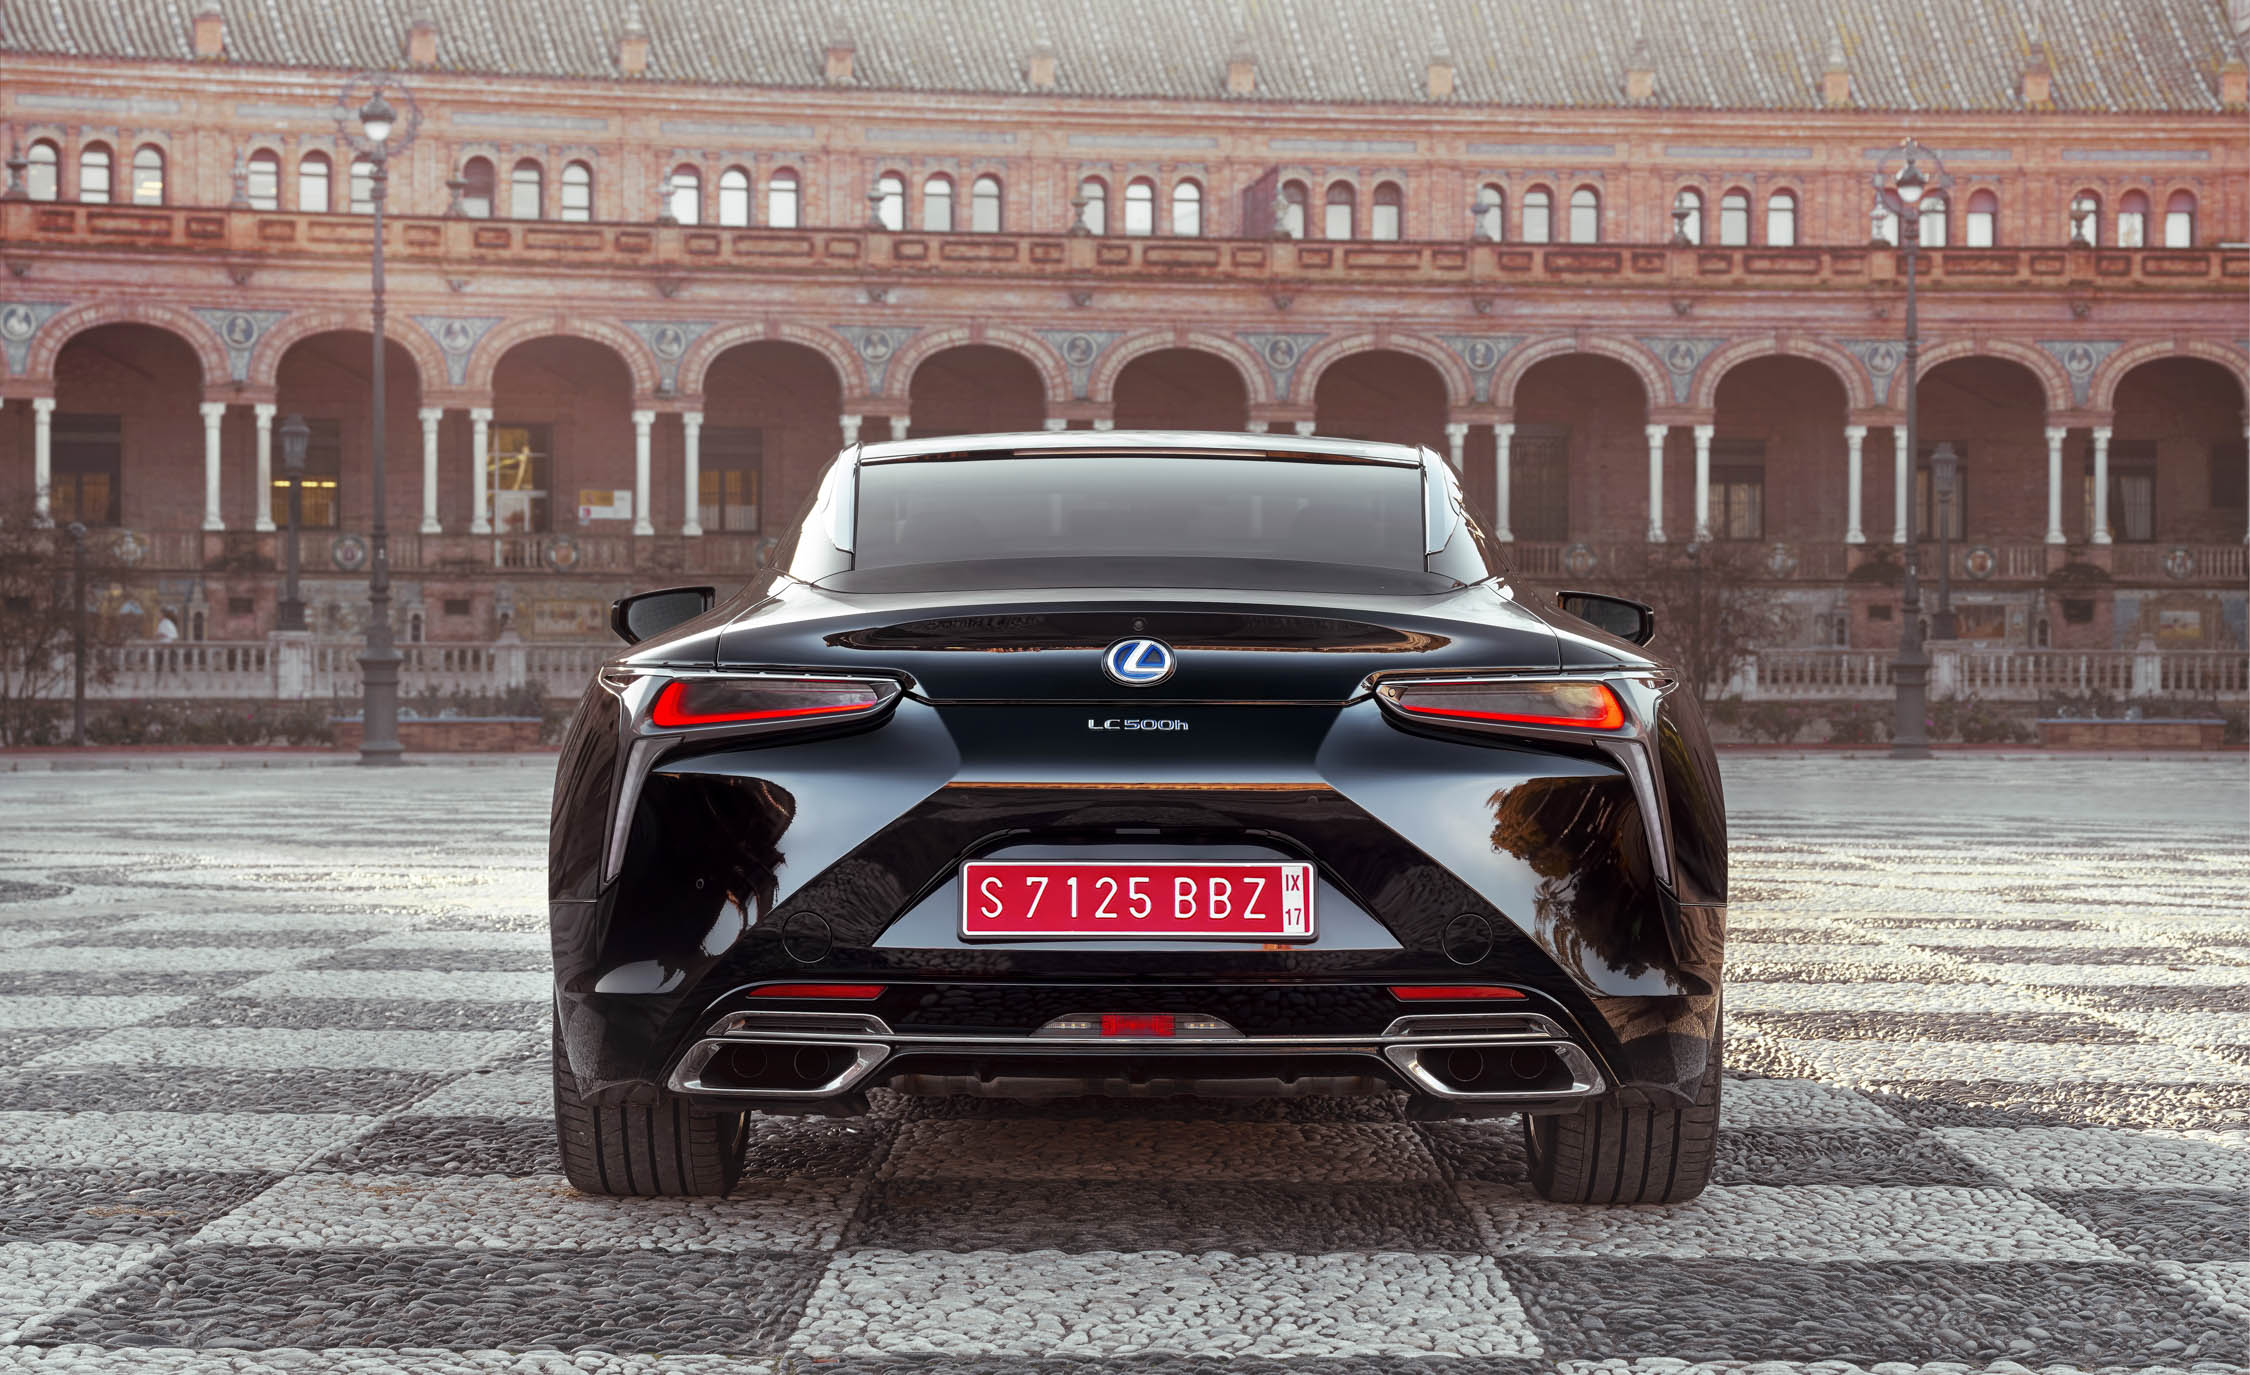 2018 Lexus Lc 500h Black Exterior Rear (View 58 of 84)